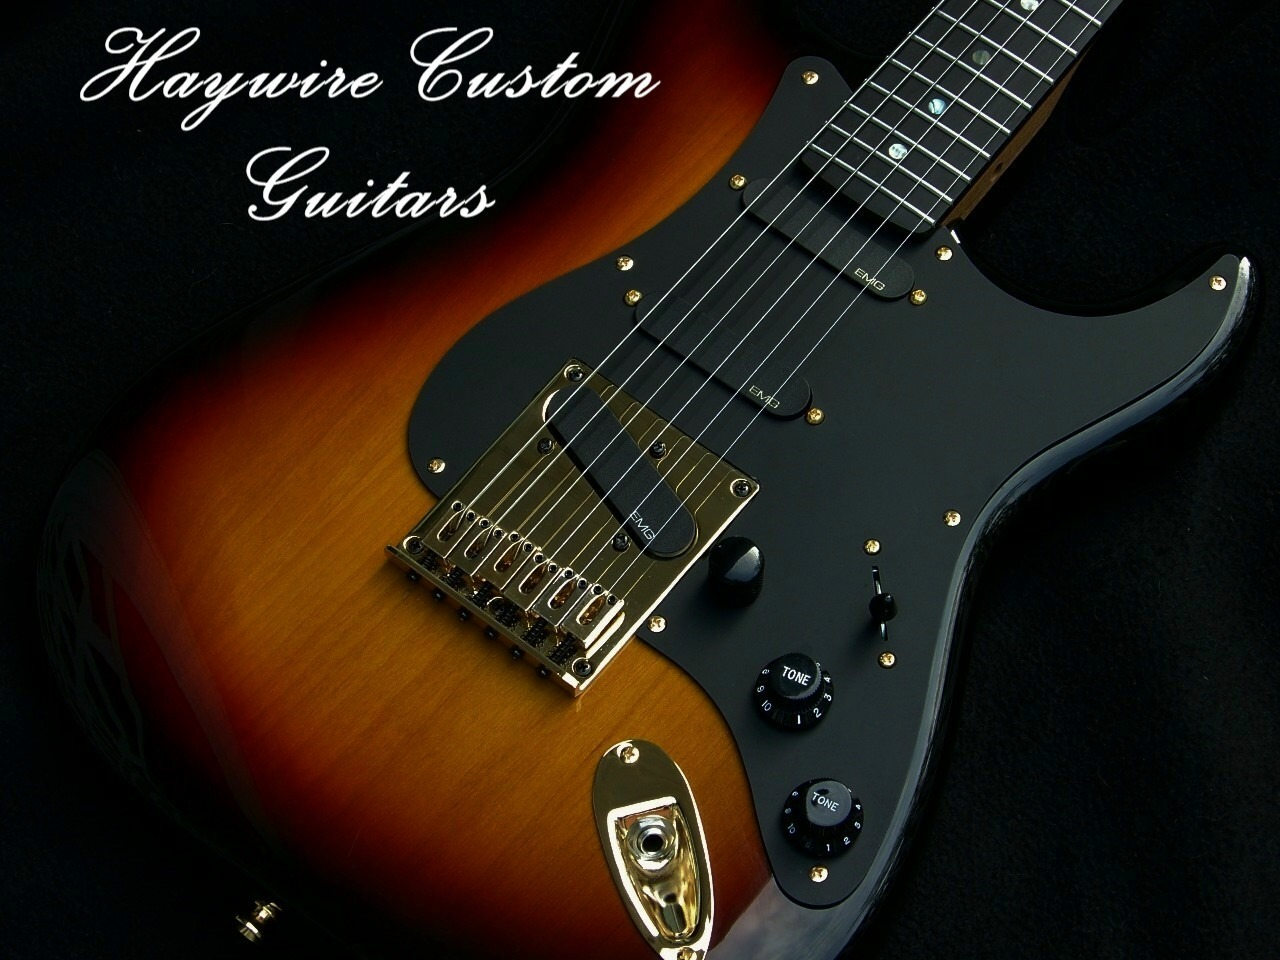 image Haywire Custom Guitars-Products Nashville Players #1 Guitar https://haywirecustomguitars.com/nashville-players/